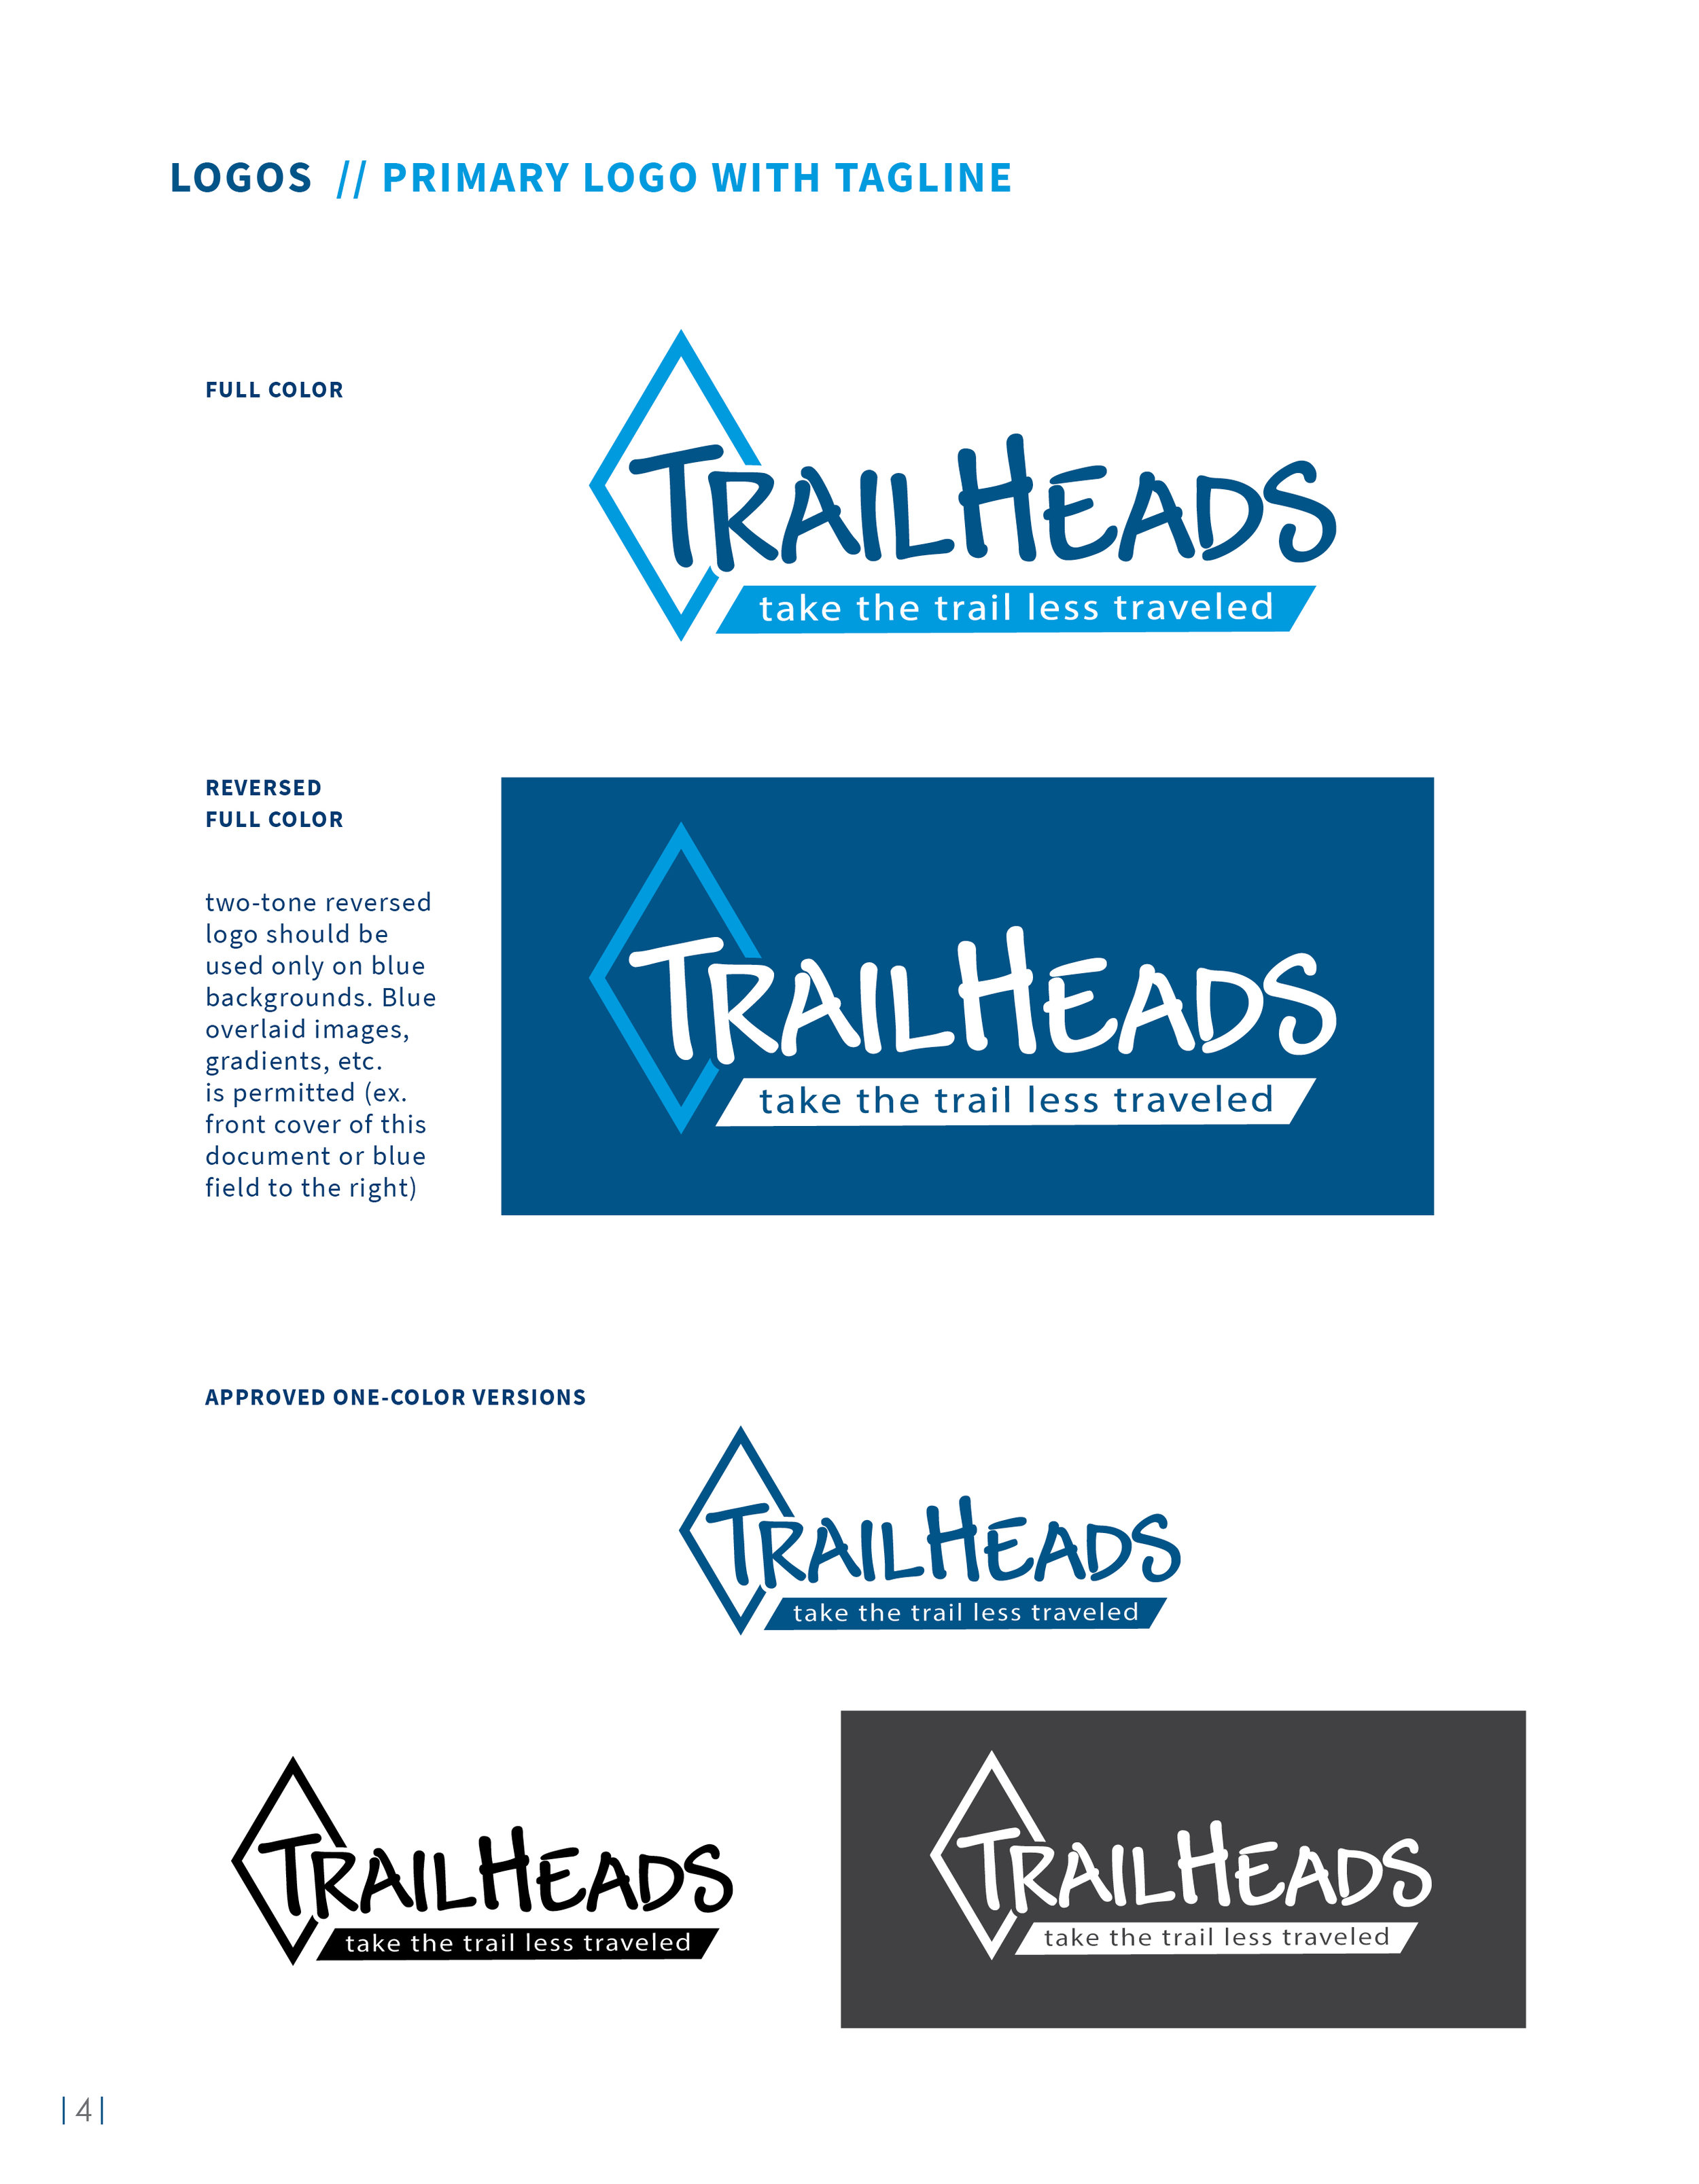 apparel-company-brand-guidelines-design-by-jordan-fretz-design-14.jpg